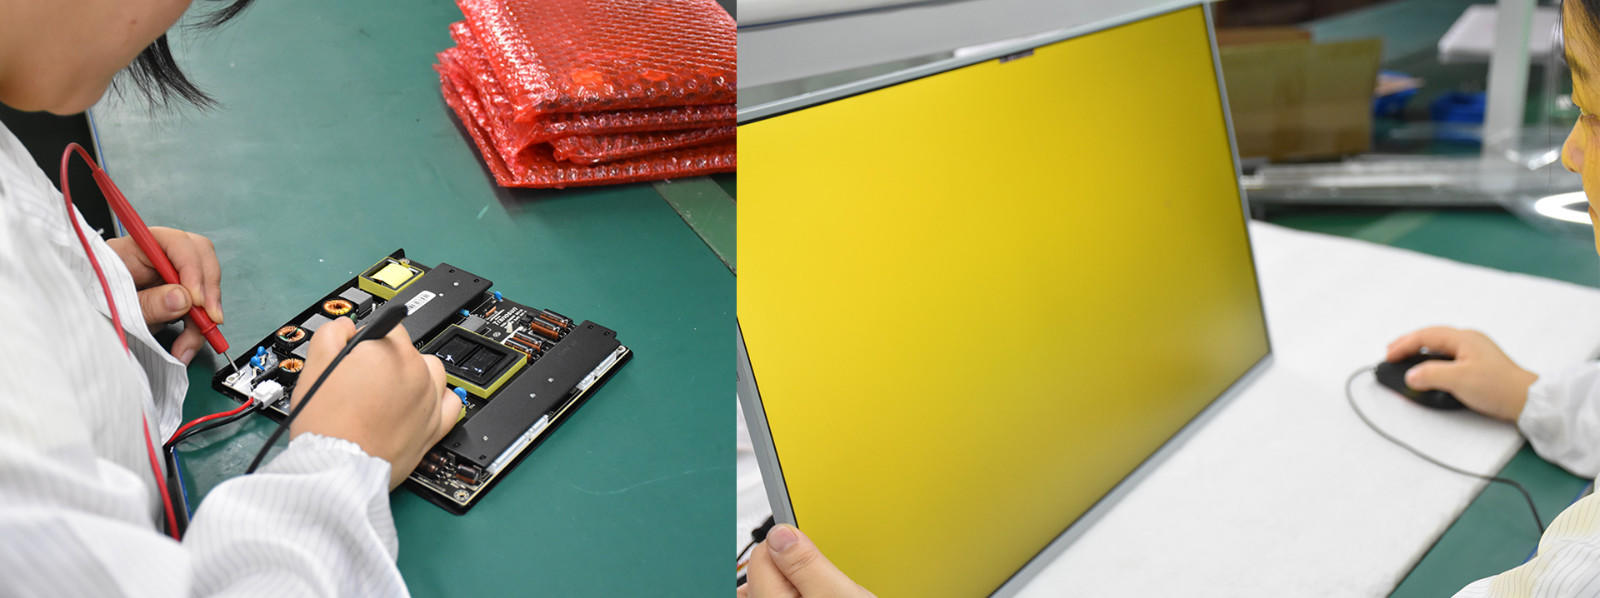 Hengstar Brand 5wire touch panel pc manufacture